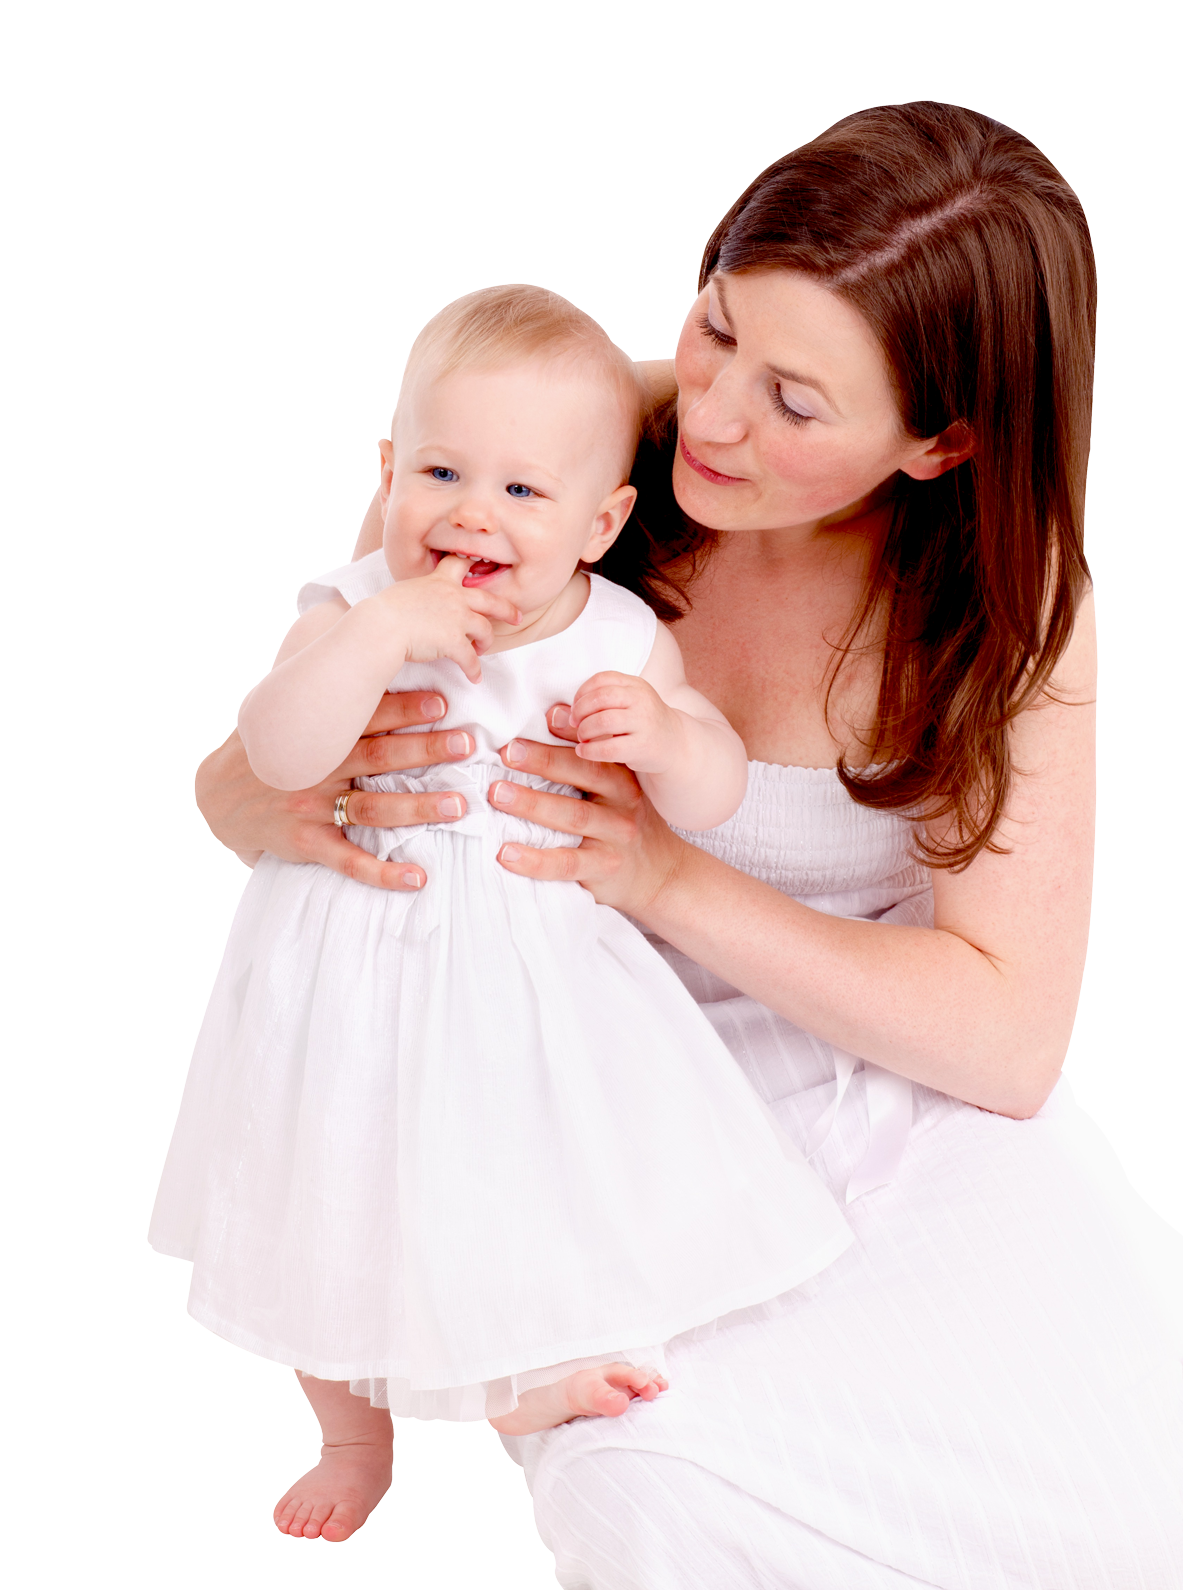 Mom And Baby Png - Mom And Baby Png Hdpng.com 1183, Transparent background PNG HD thumbnail